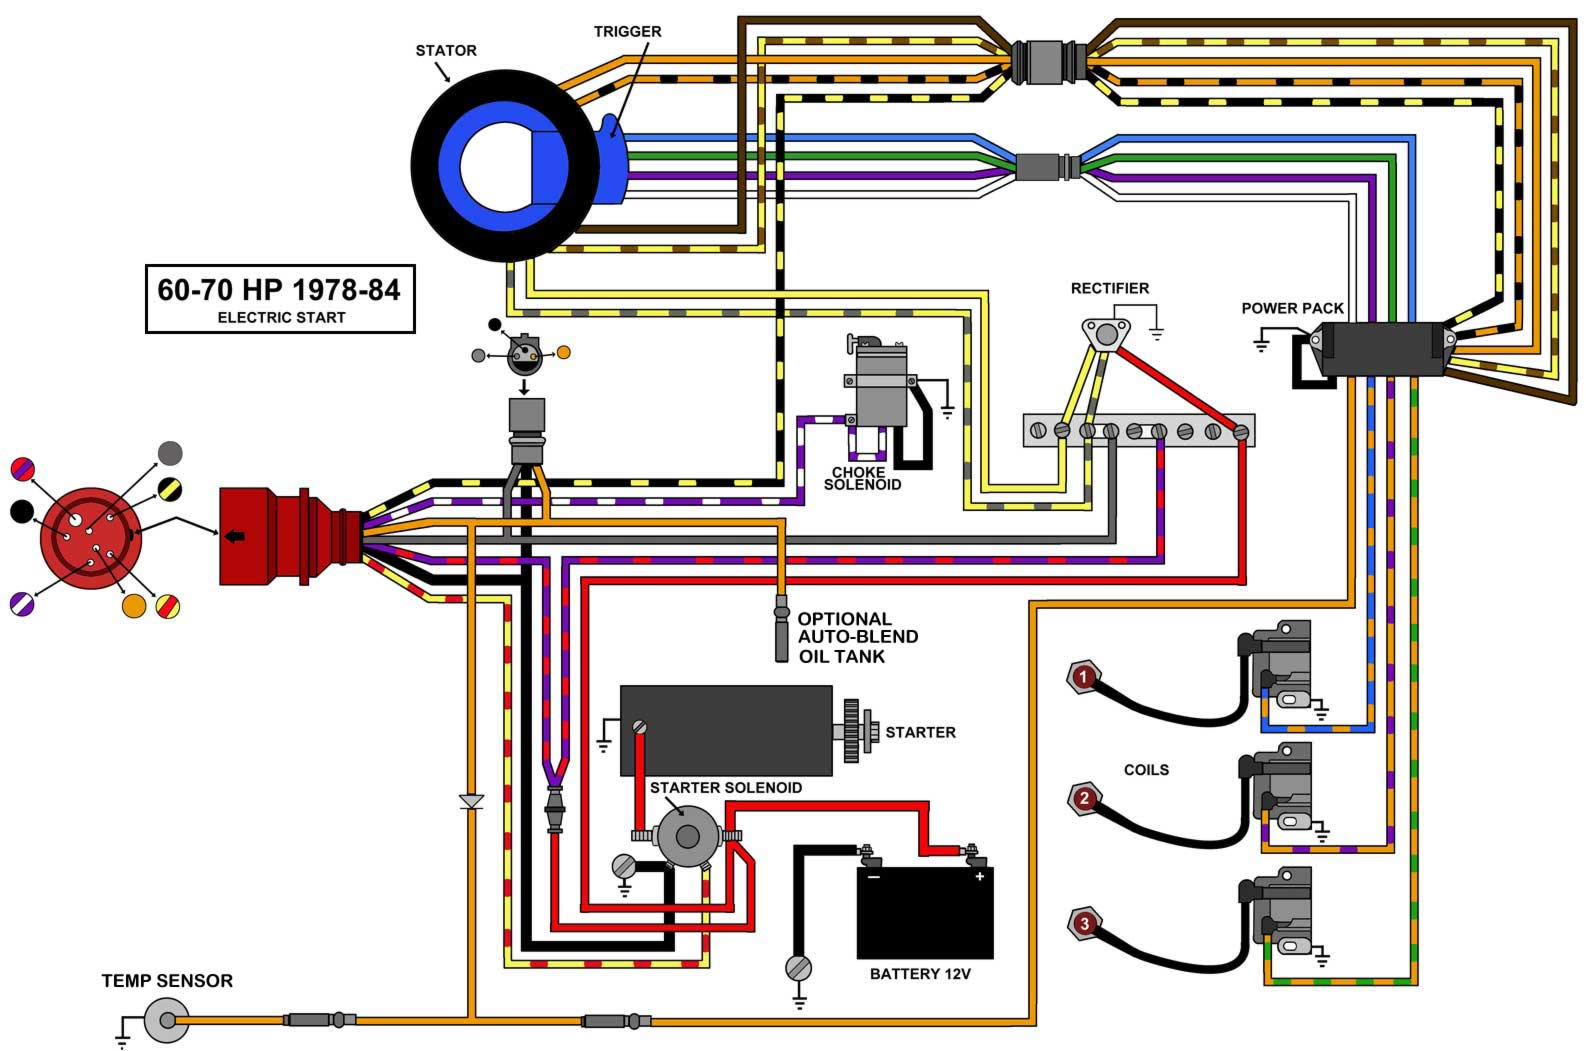 60 hp johnson outboard wiring diagram wiring diagram data schema 1972 Johnson Outboard Wiring Diagram 50 HP evinrude johnson outboard wiring diagrams mastertech marine johnson evinrude starter circuit wiring diagram 60 hp johnson outboard wiring diagram